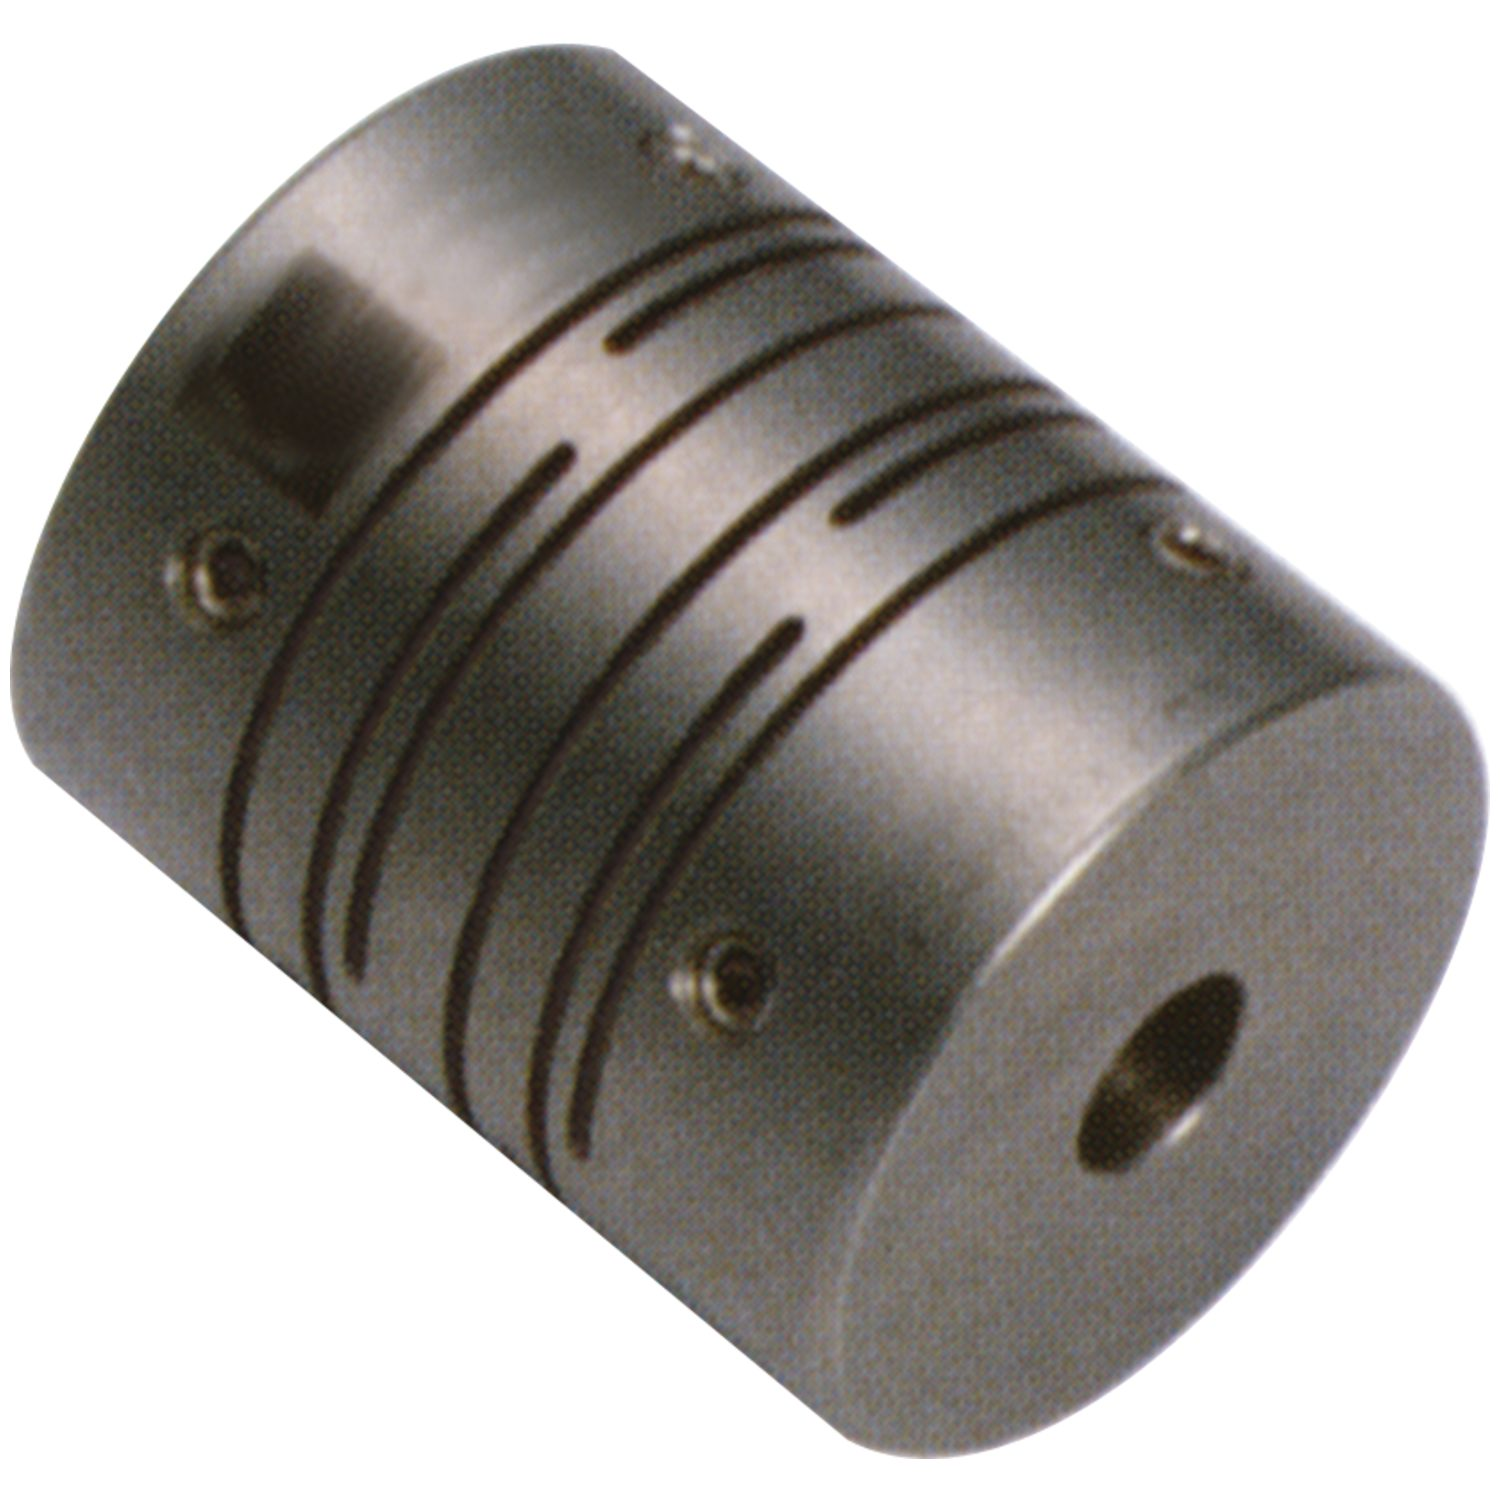 R3002.1 - Spiral Beam Coupling - Stainless Steel